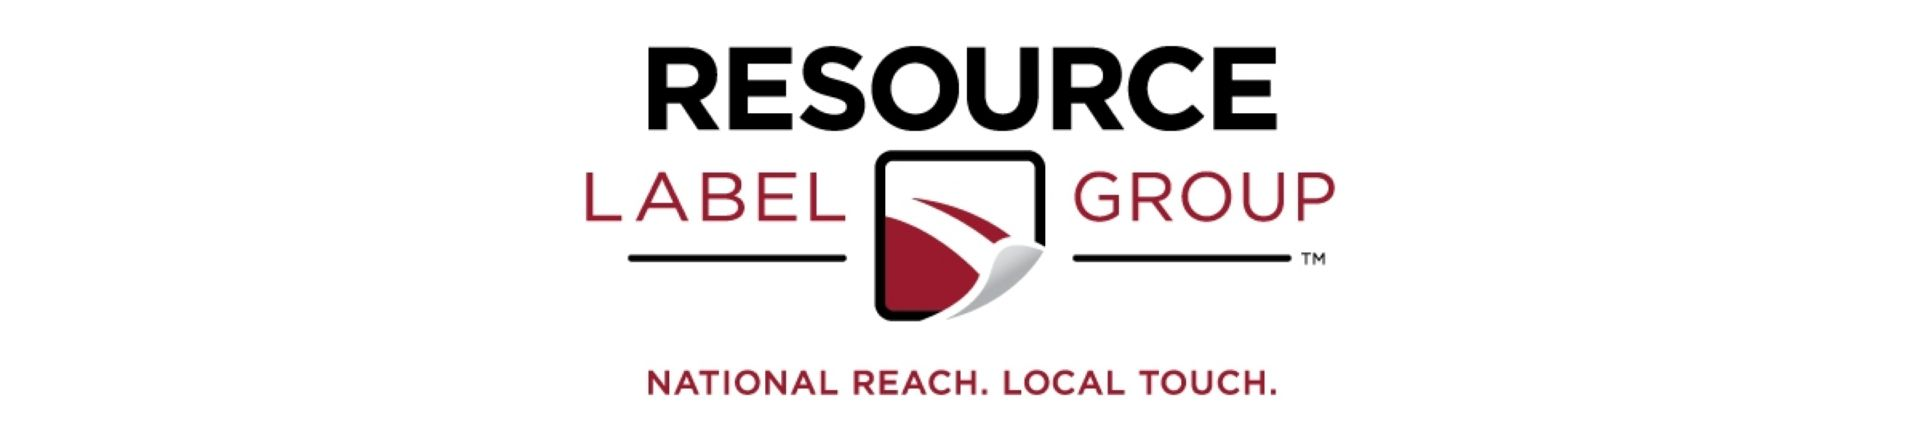 Resource Label Group